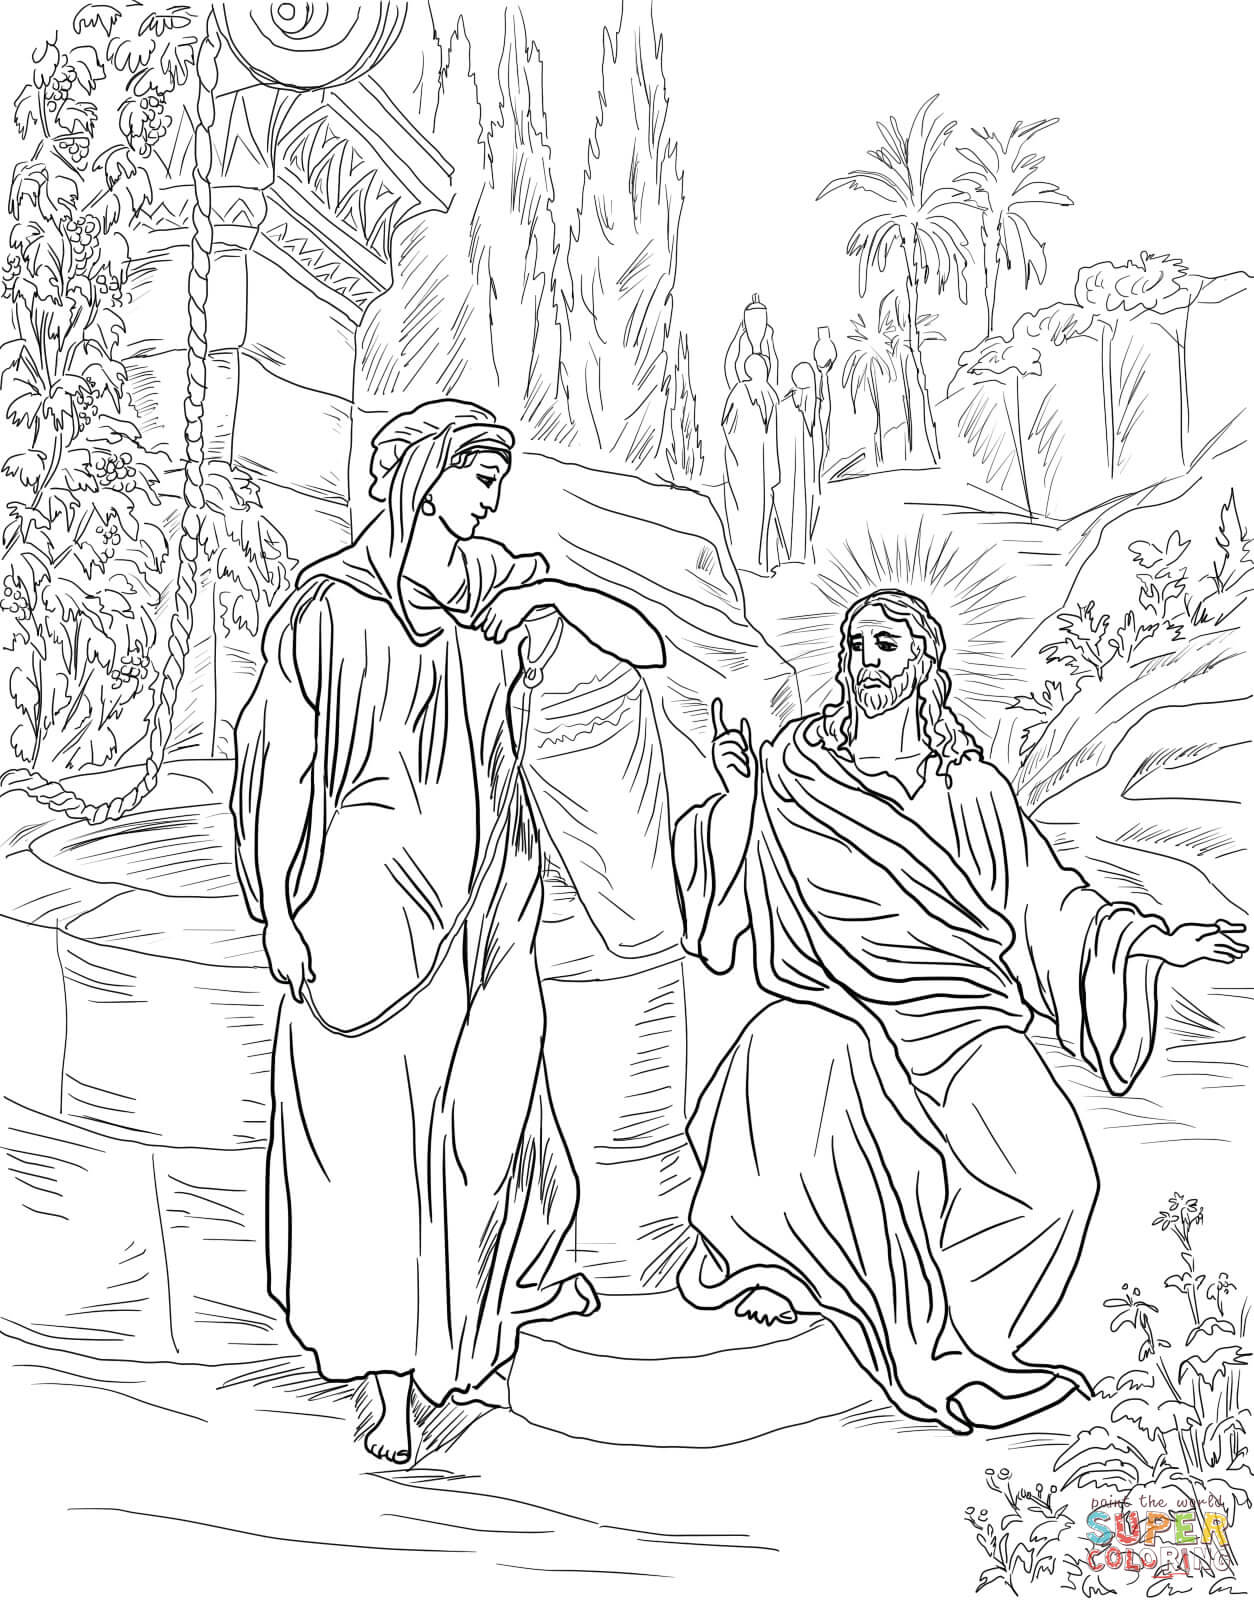 Free Woman At The Well Coloring Pages Download Free Clip